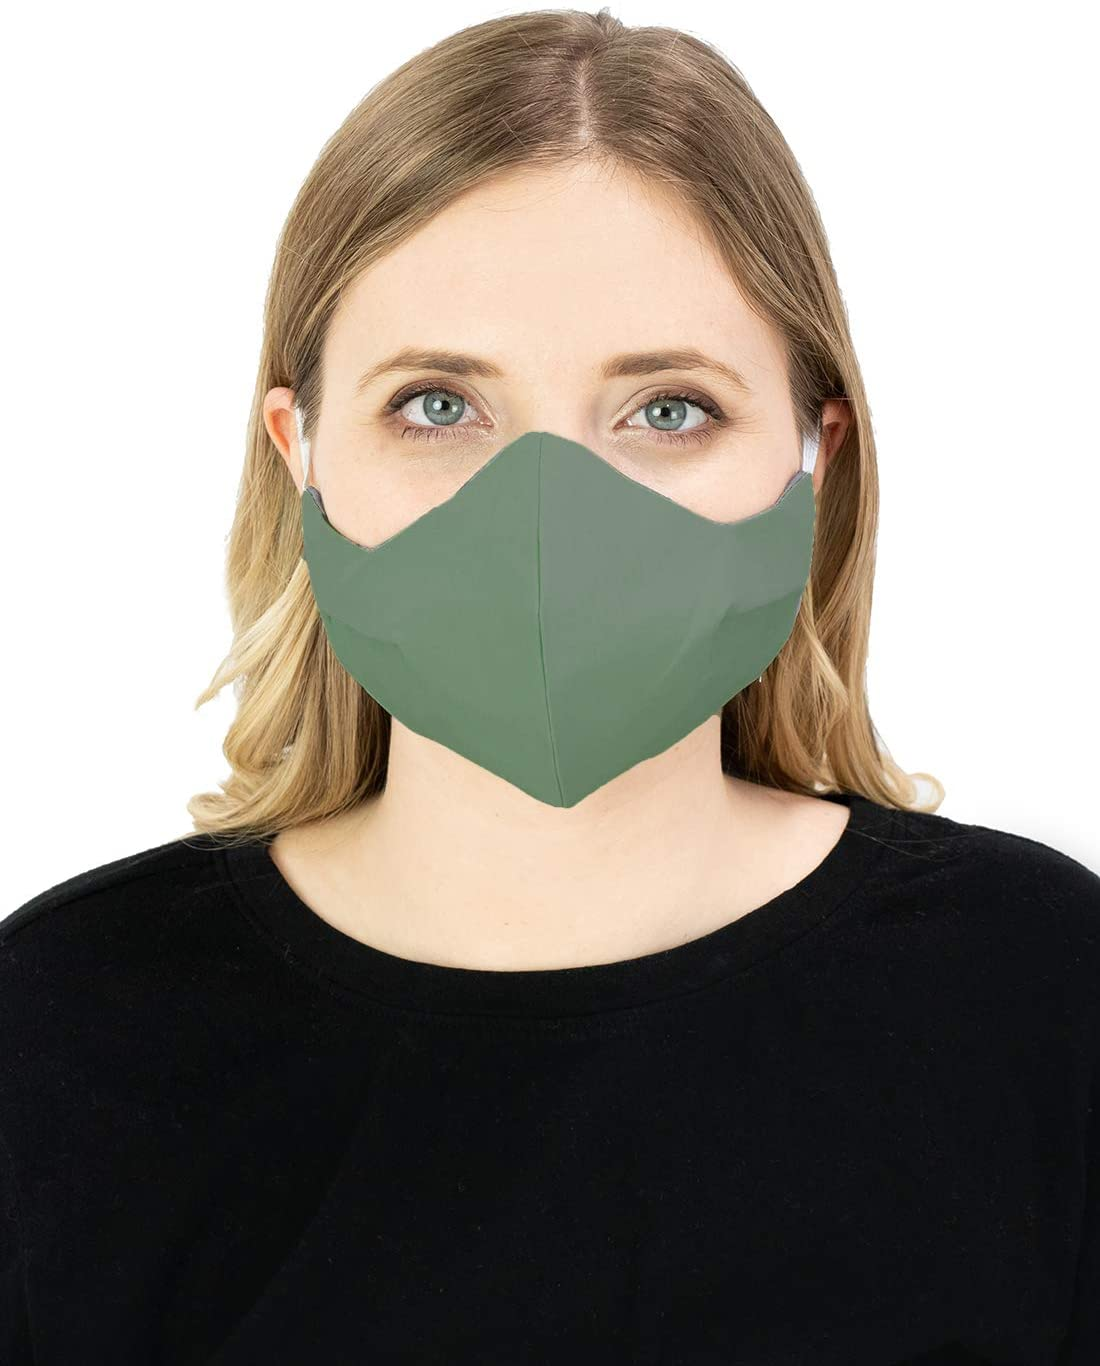 Masker-AID: 3 Layer Cotton, Reusable, Reversible, Breathable, Unisex Adult Face Mask (Over Ear S/M, Sage)